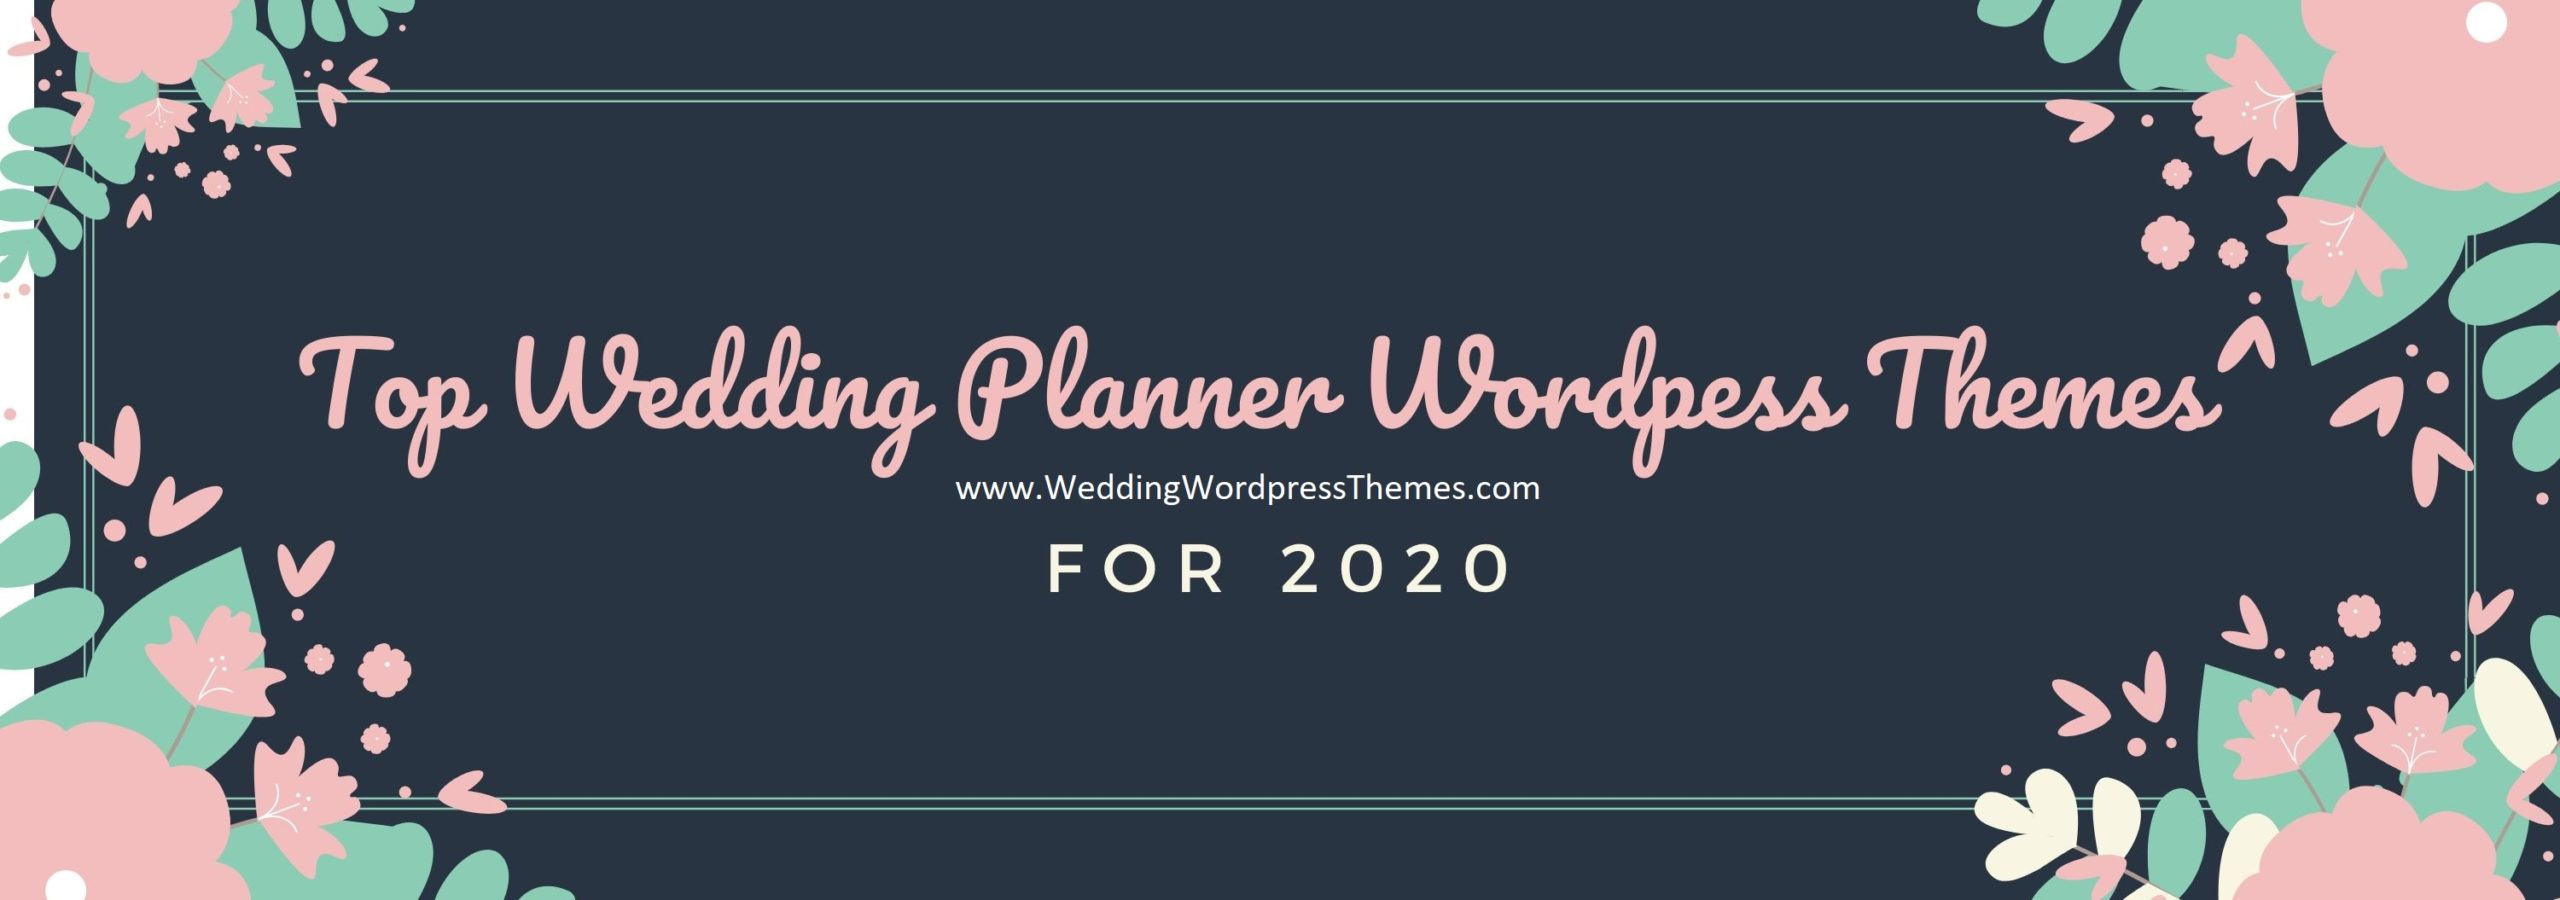 Top Wedding Planner WordPress Themes 2020